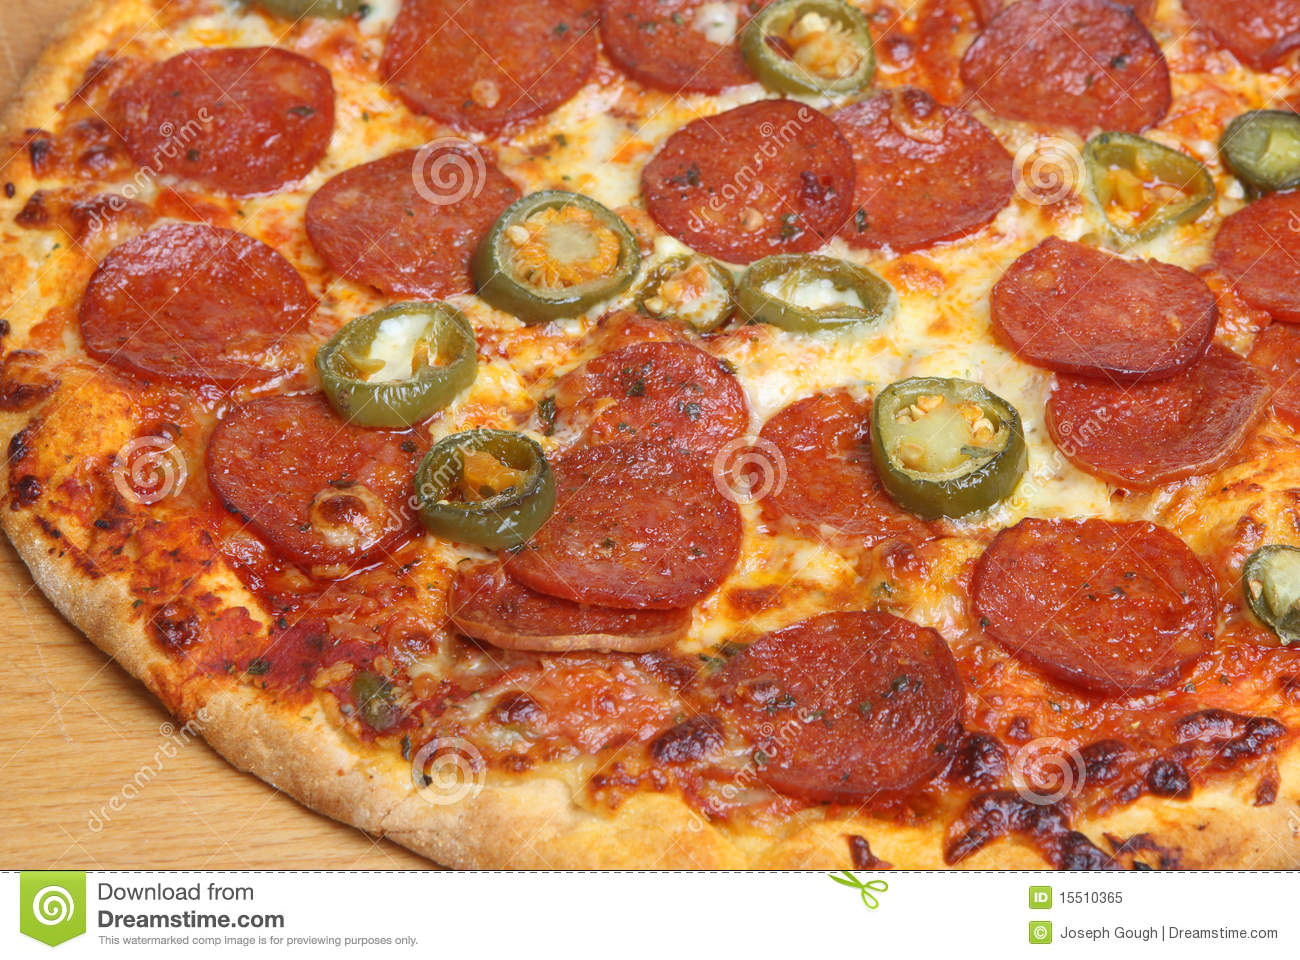 Pepperoni pizza with green chilli peppers.